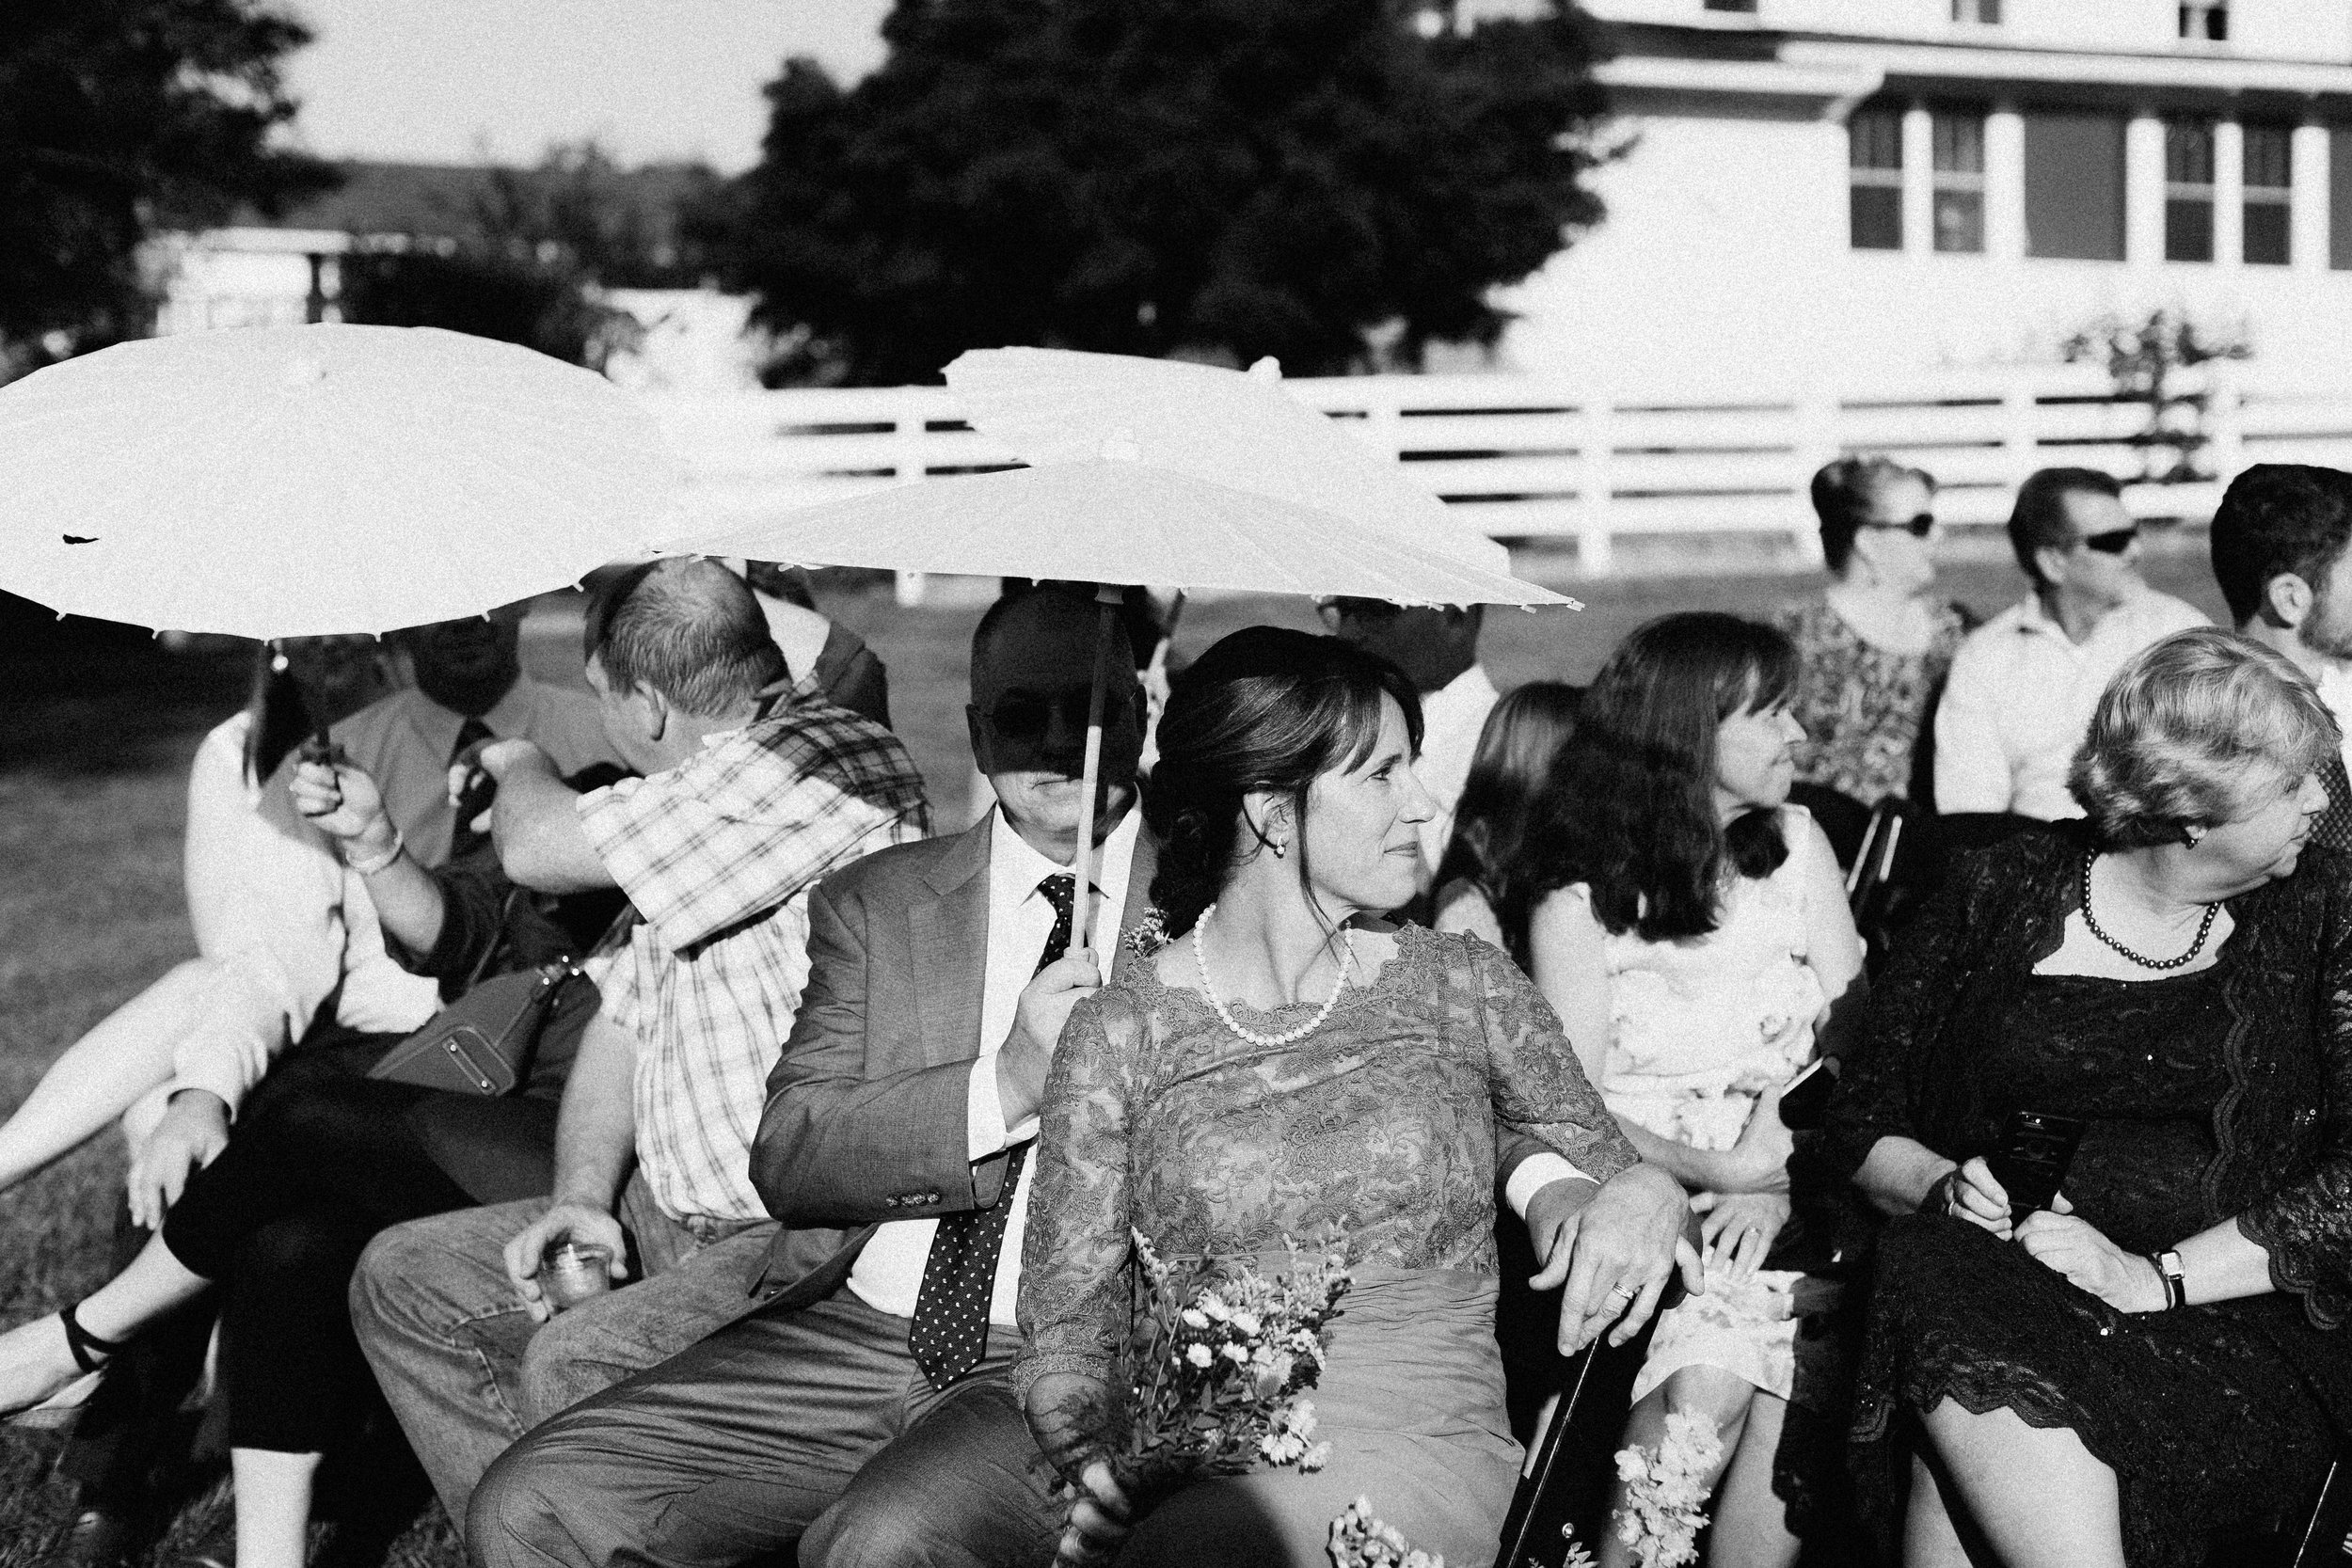 cleveland_georgia_mountain_laurel_farm_natural_classic_timeless_documentary_candid_wedding_emotional_photojournalism_river_west_1611.jpg